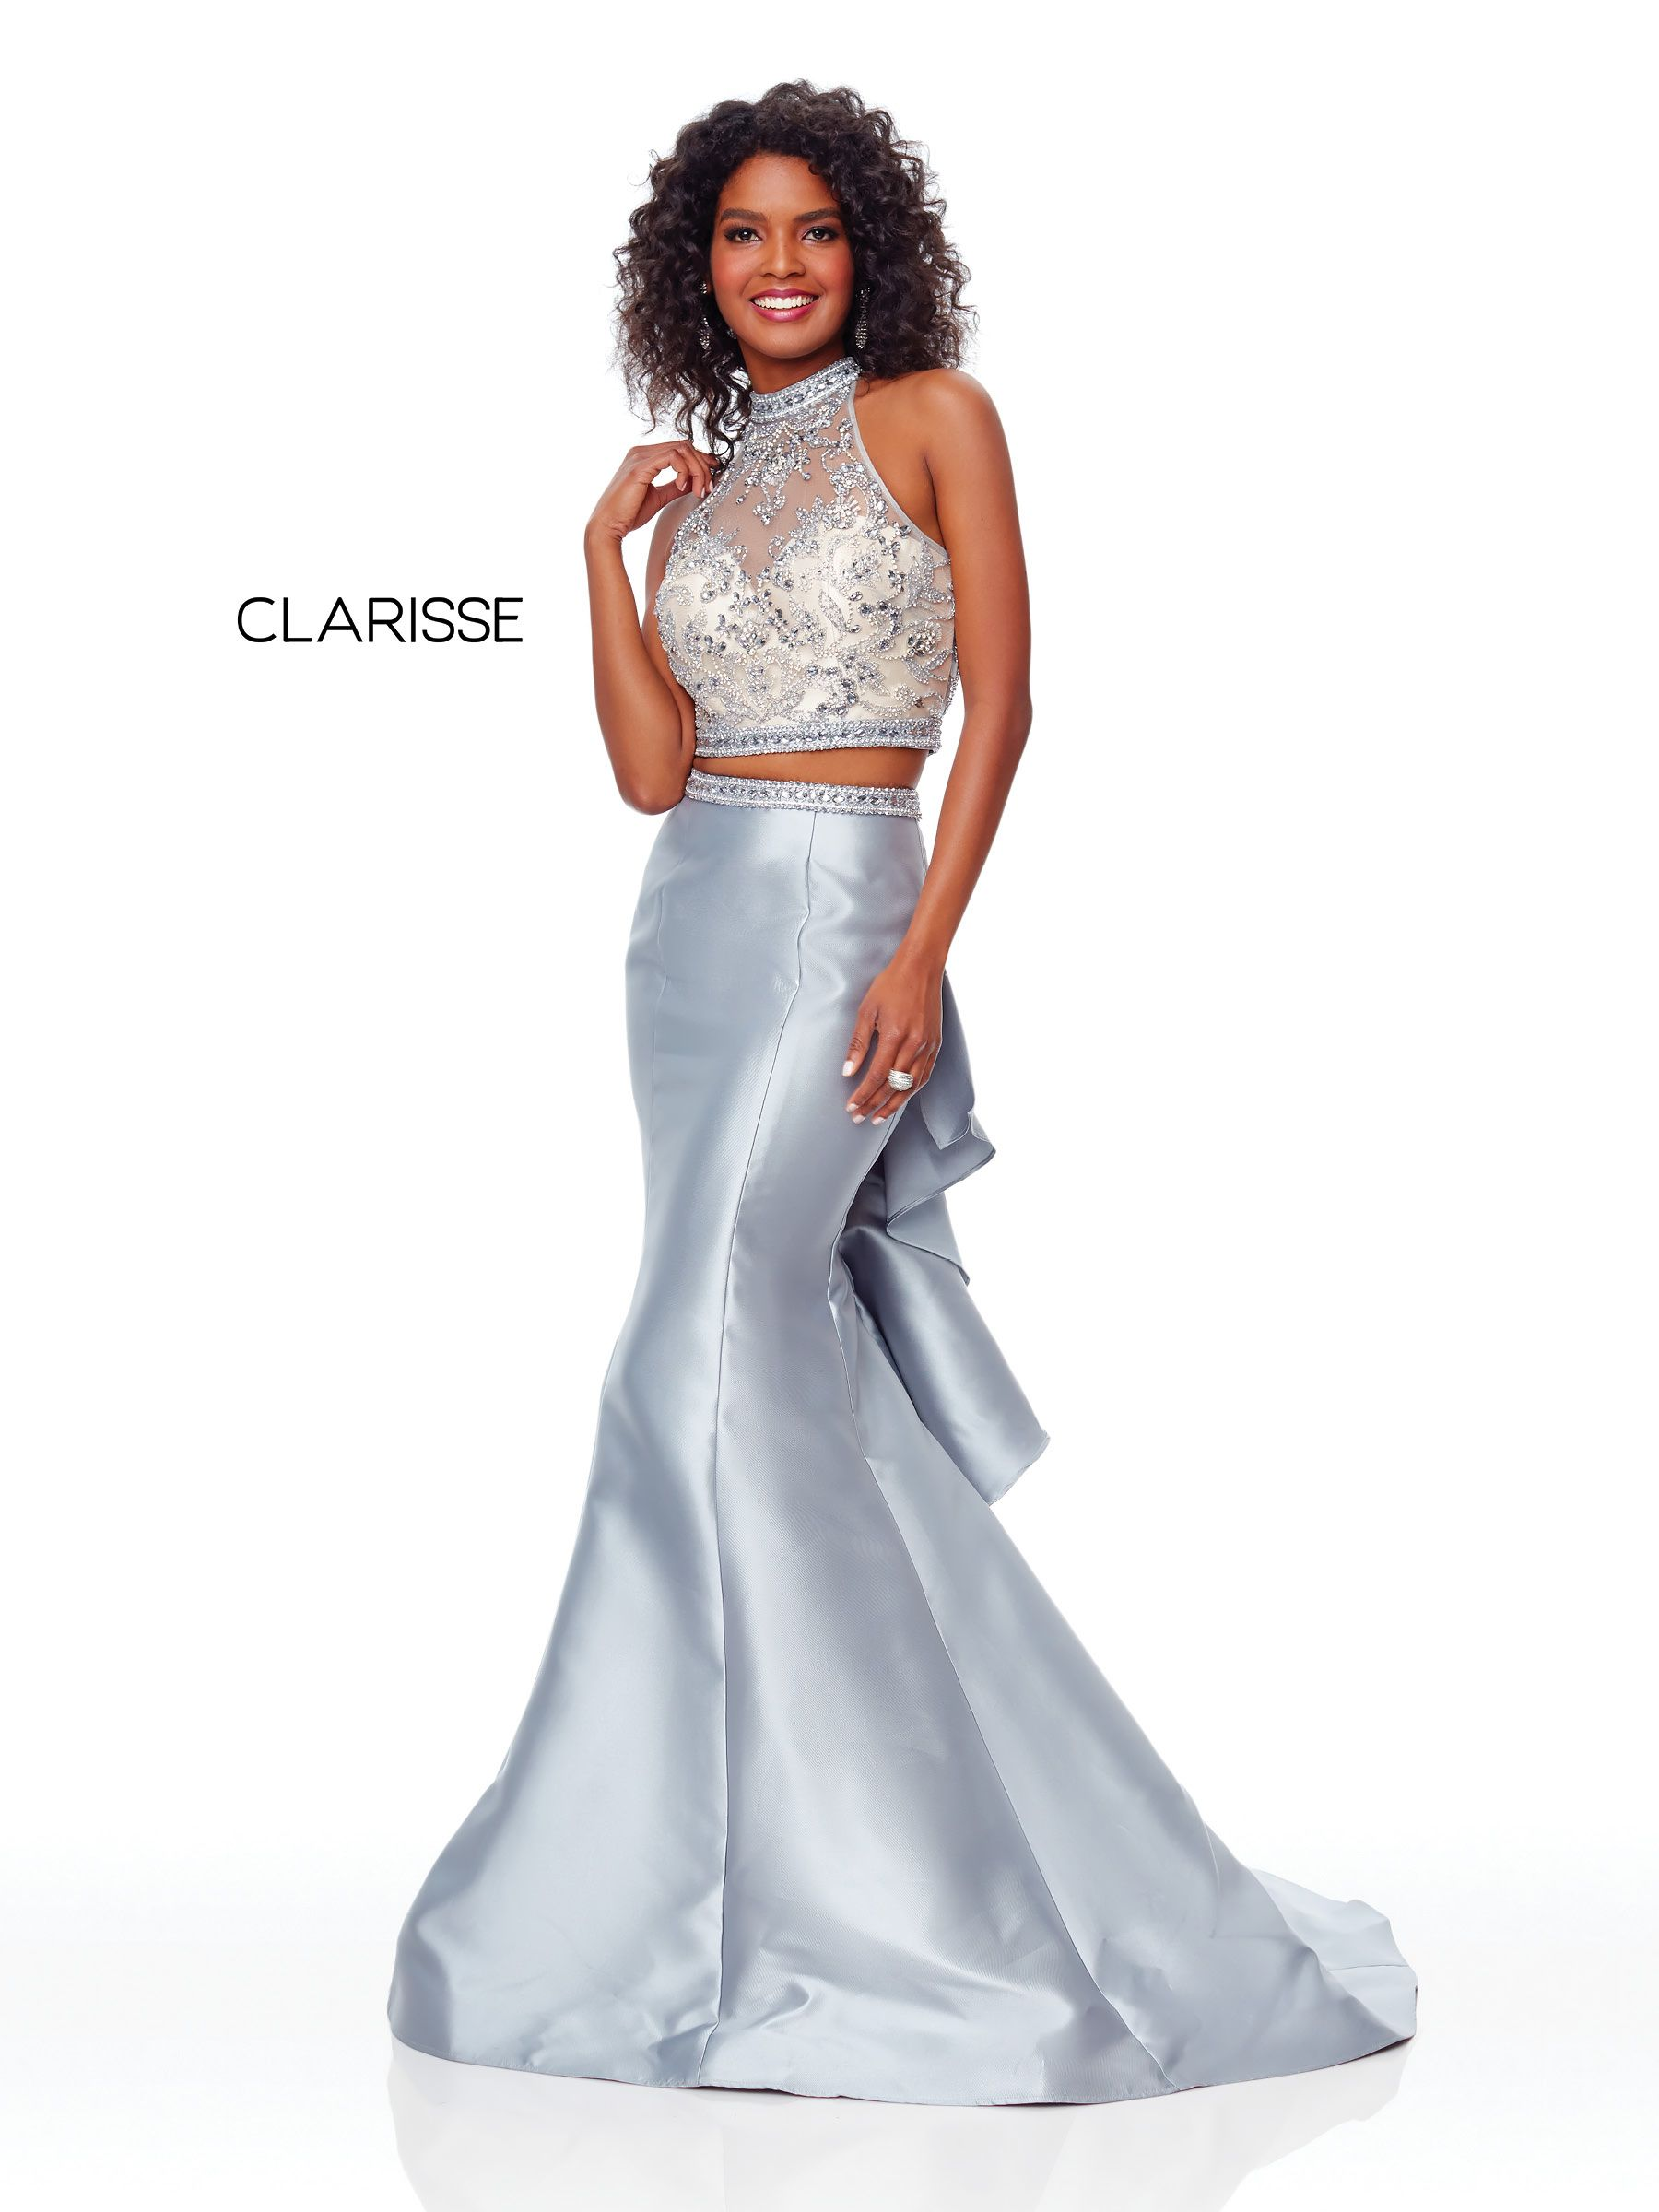 045f94bb849c 5055 - Silver two piece prom dress with a beaded top and a fit to flare  mikado bottom with ruffles on the back